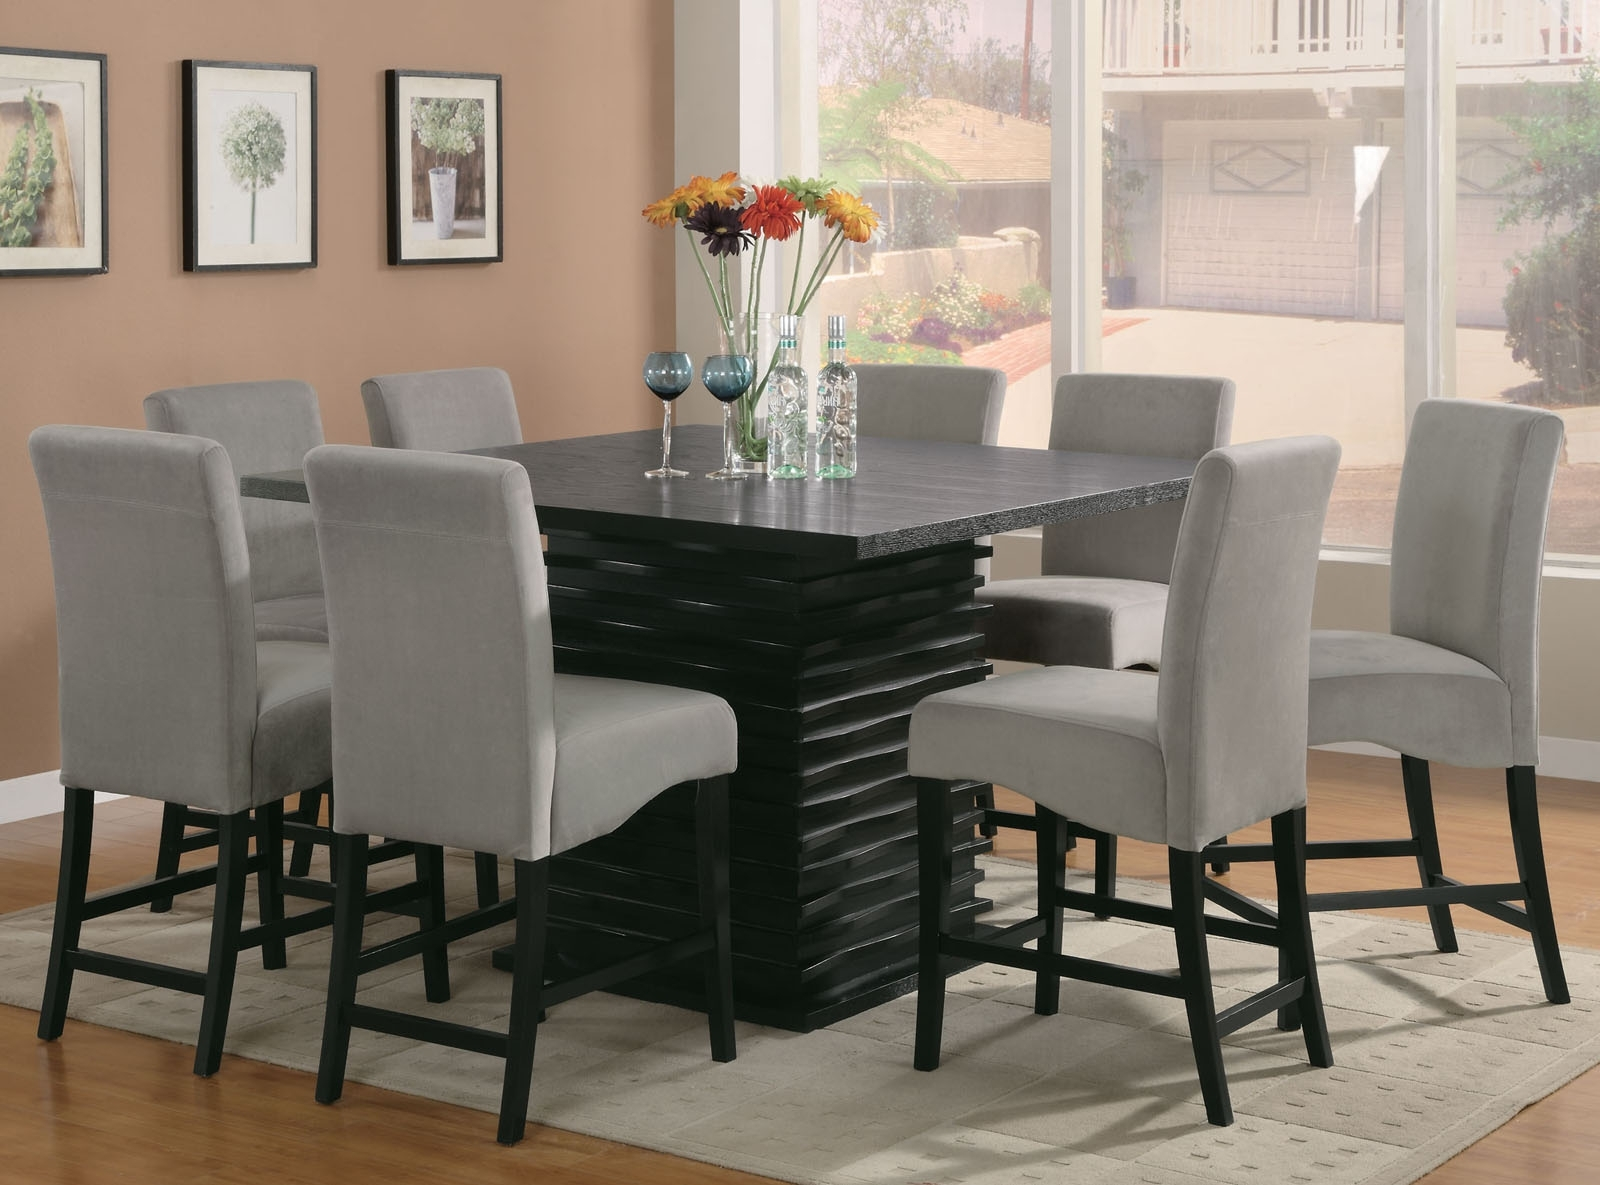 8 Chairs Dining Sets Intended For Famous Coaster Stanton 9Pc Counter Height Dining Set In Black With Gray (Gallery 13 of 25)